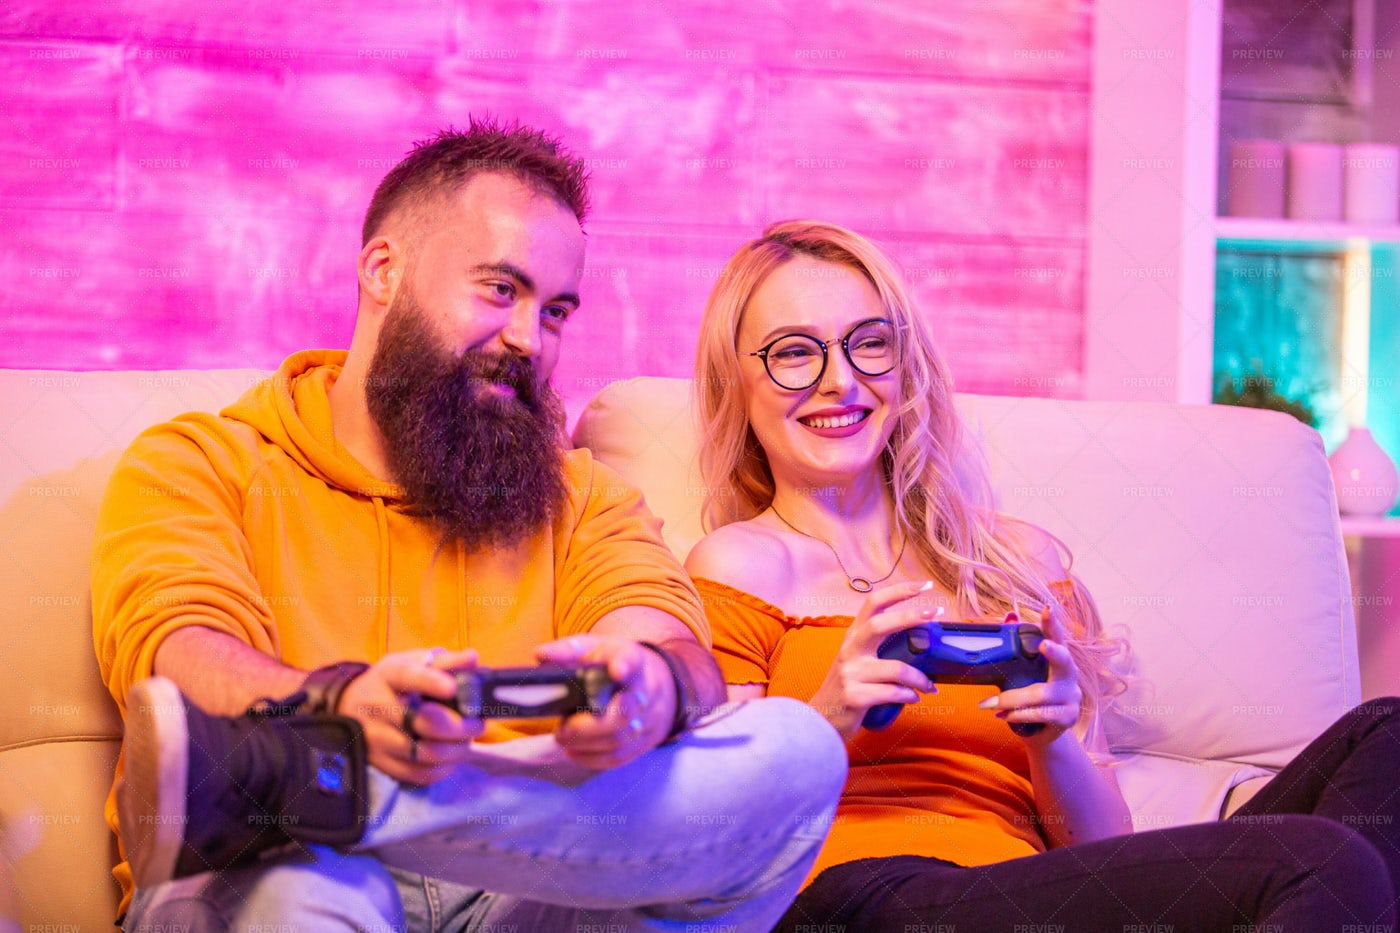 Gaming Couple On Couch: Stock Photos